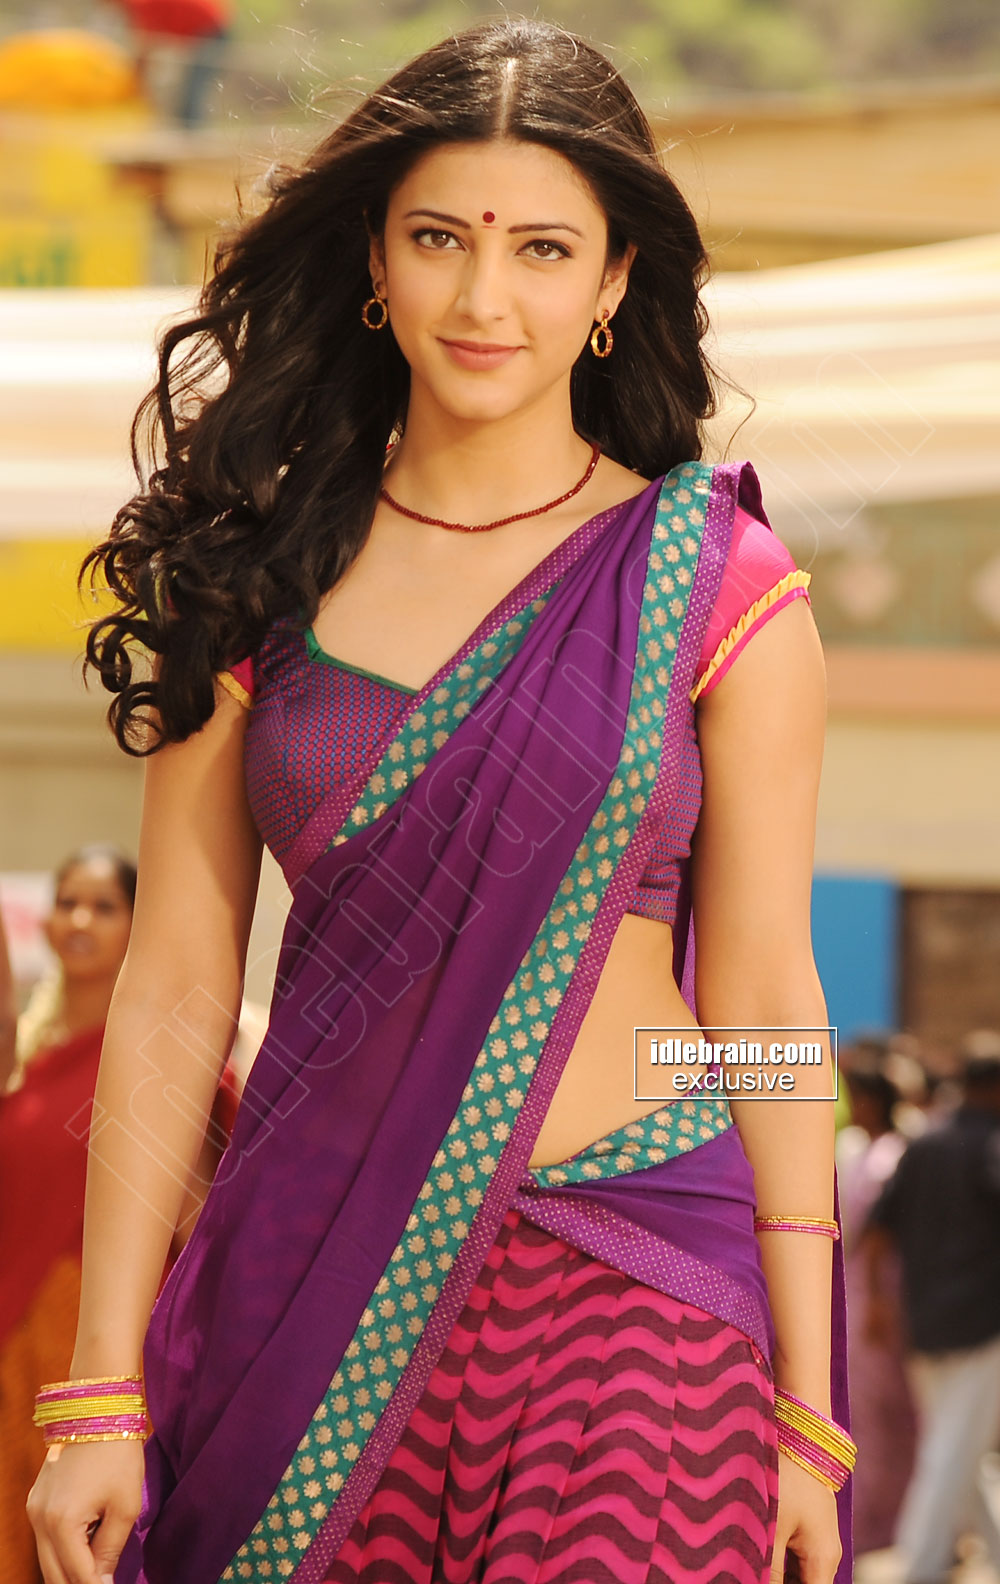 shruti haasan beautiful photos in saree from ramaiya vastavaiya film